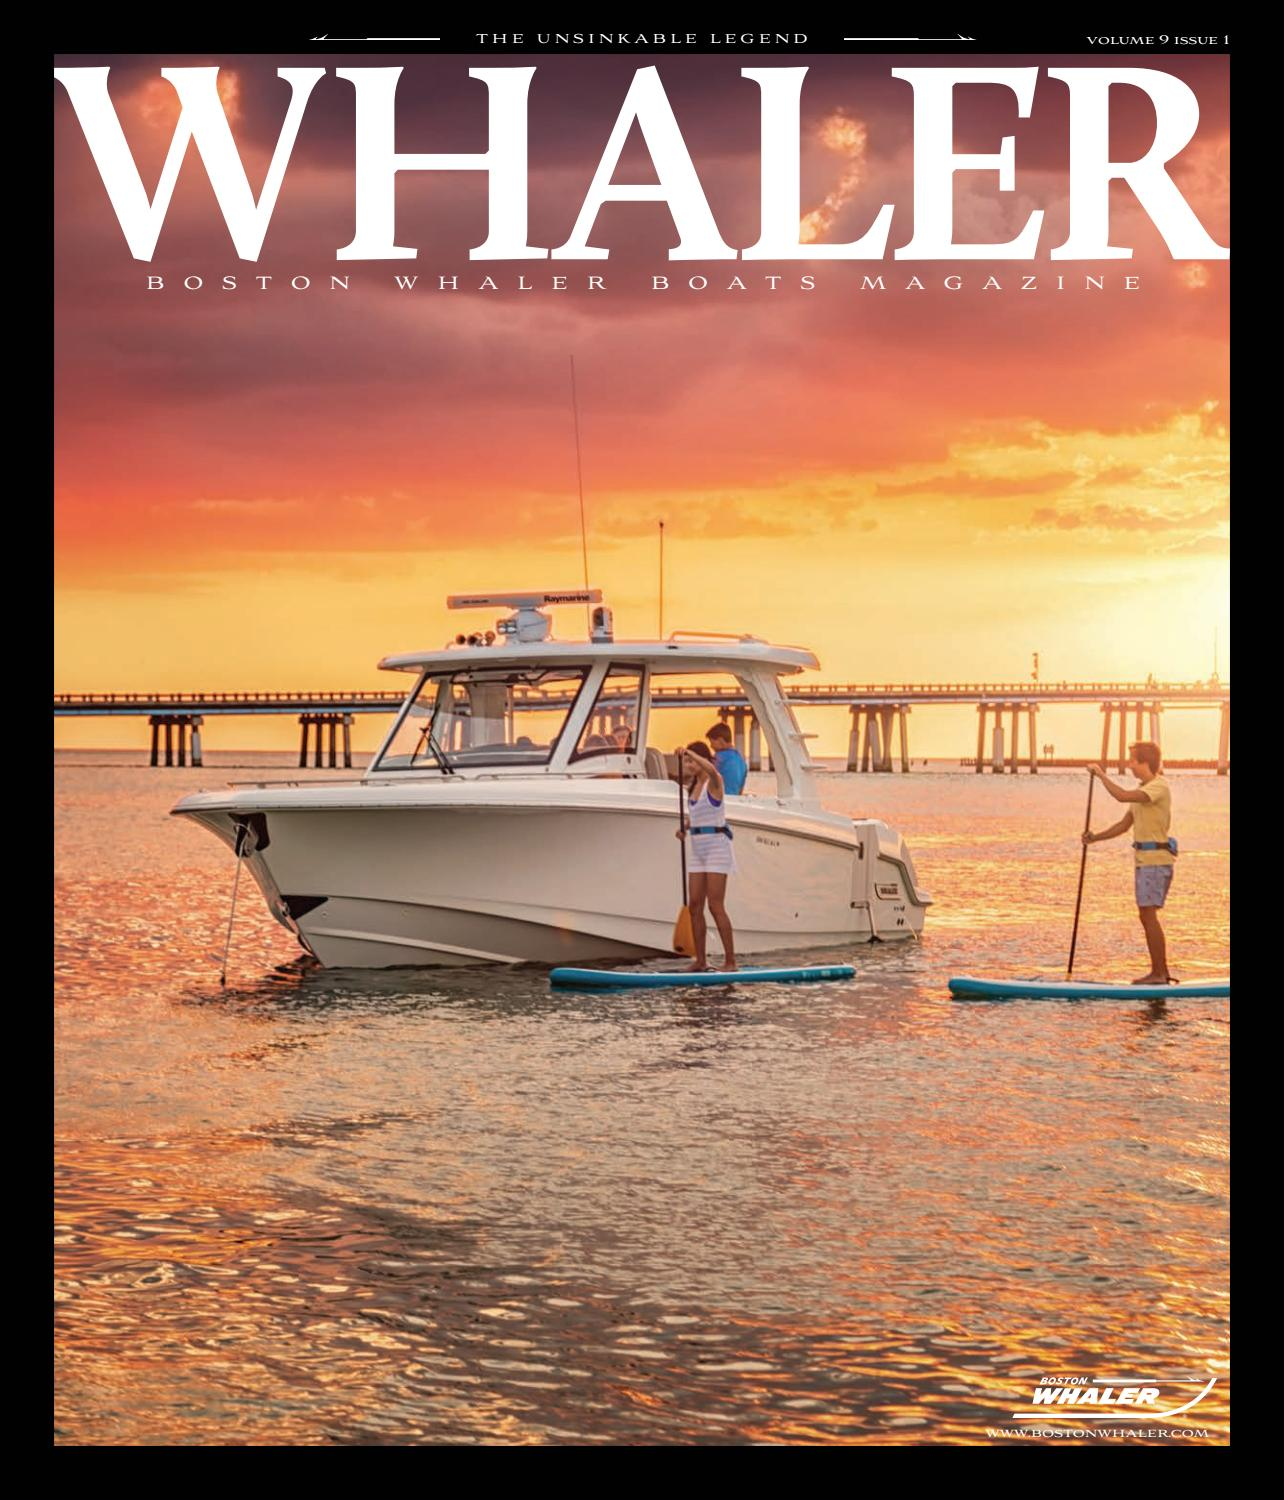 Whaler Volume 9 Issue 1 by Dino Marketing Group - issuu